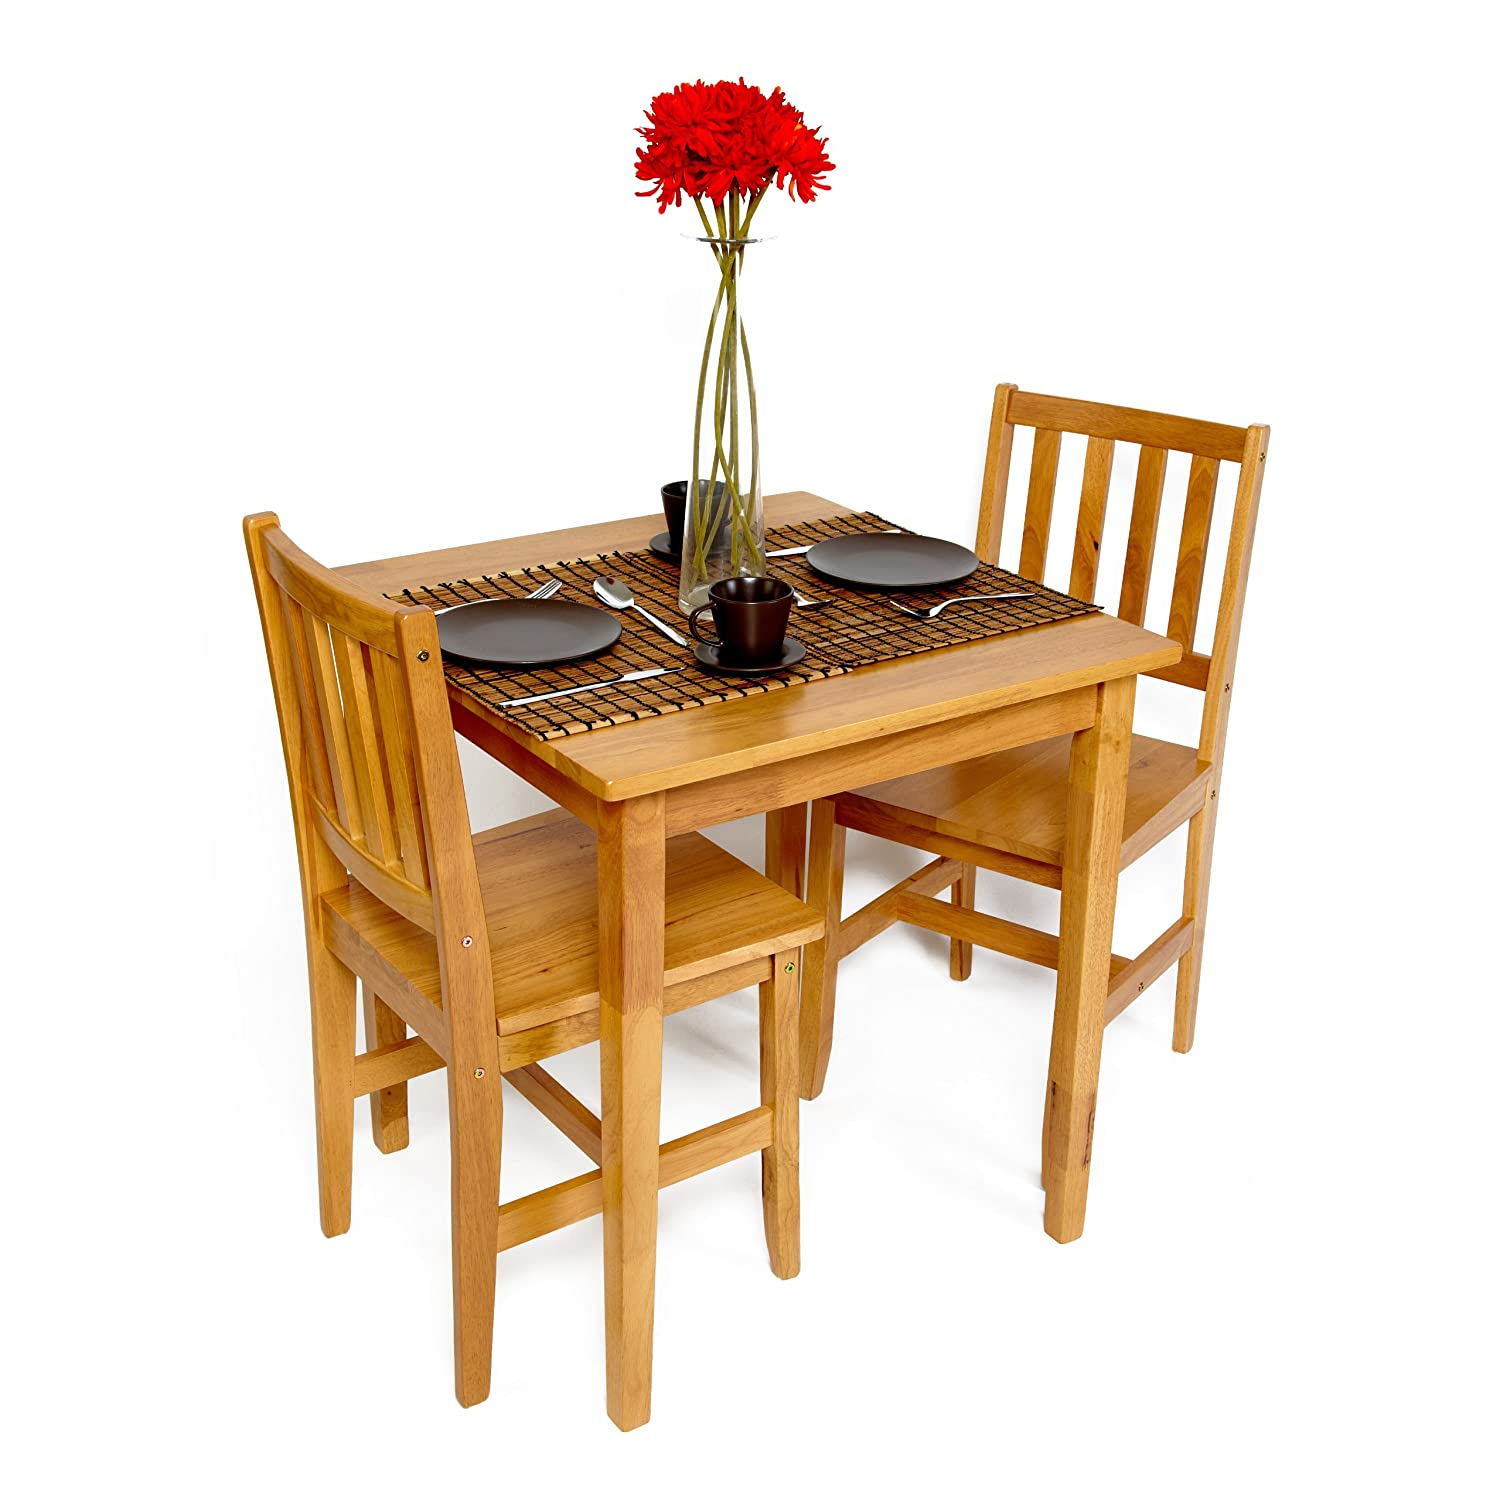 Brand new Bistro cafe dining kitchen tables and chair set